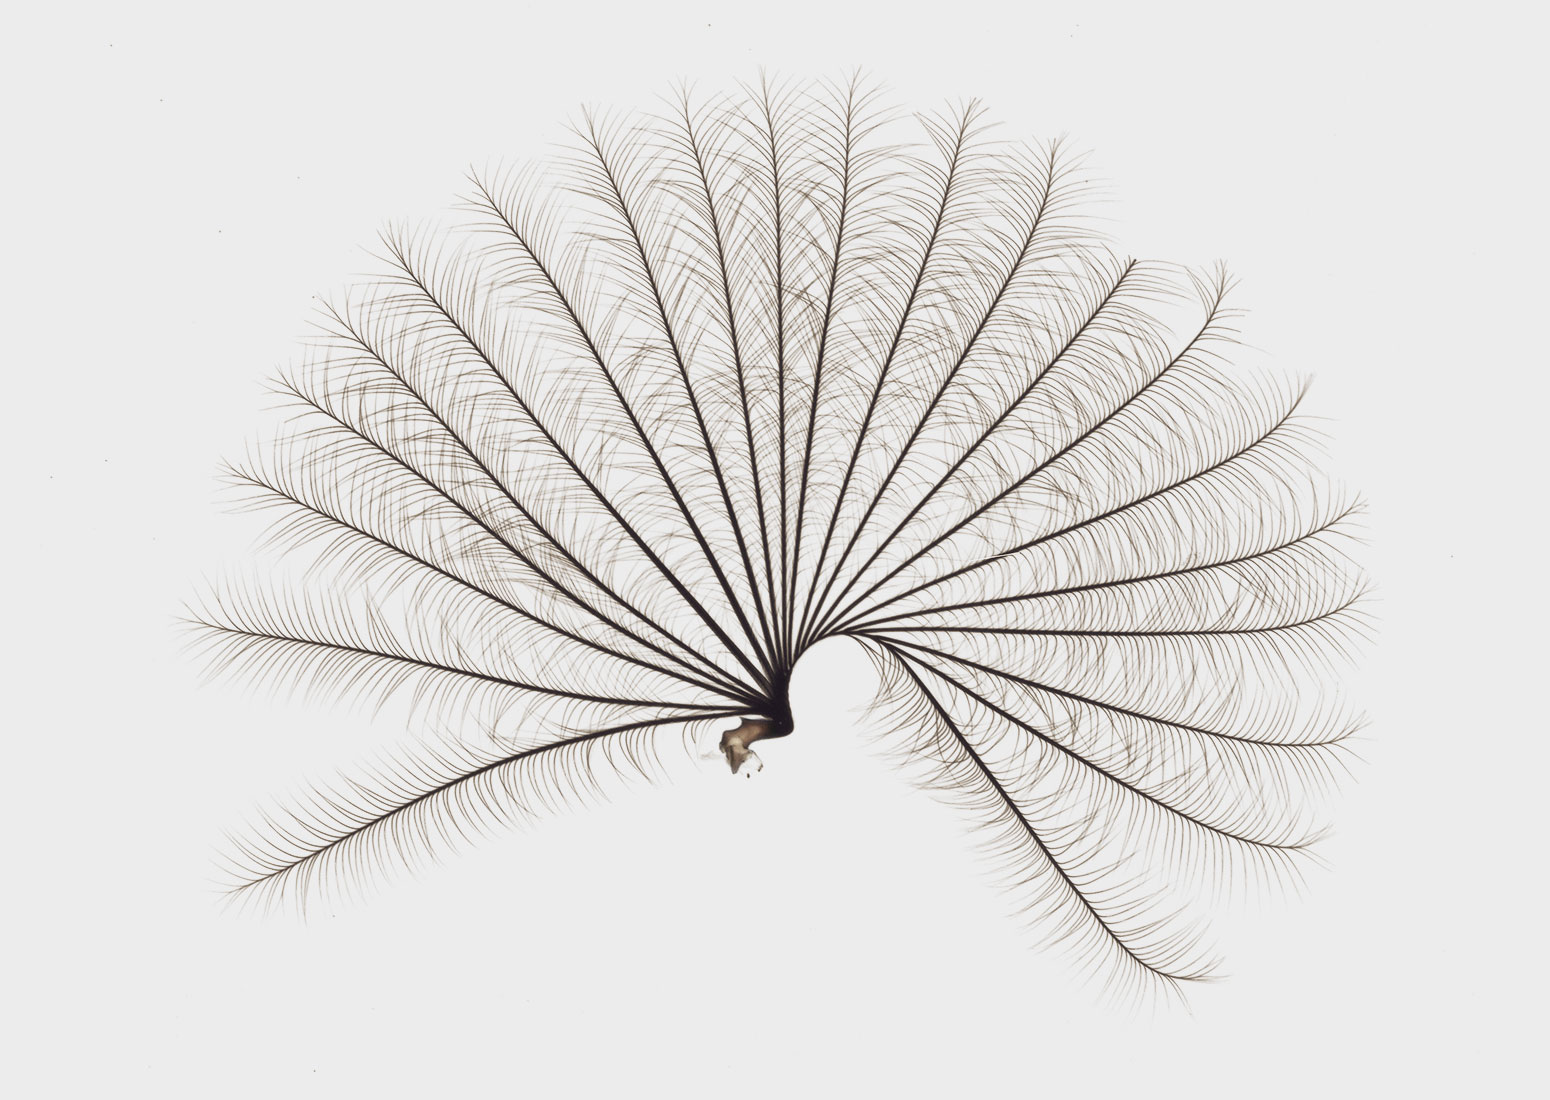 The delicate specialized structure of the water strider genus Rhagovelia looks like a Japanese fan.